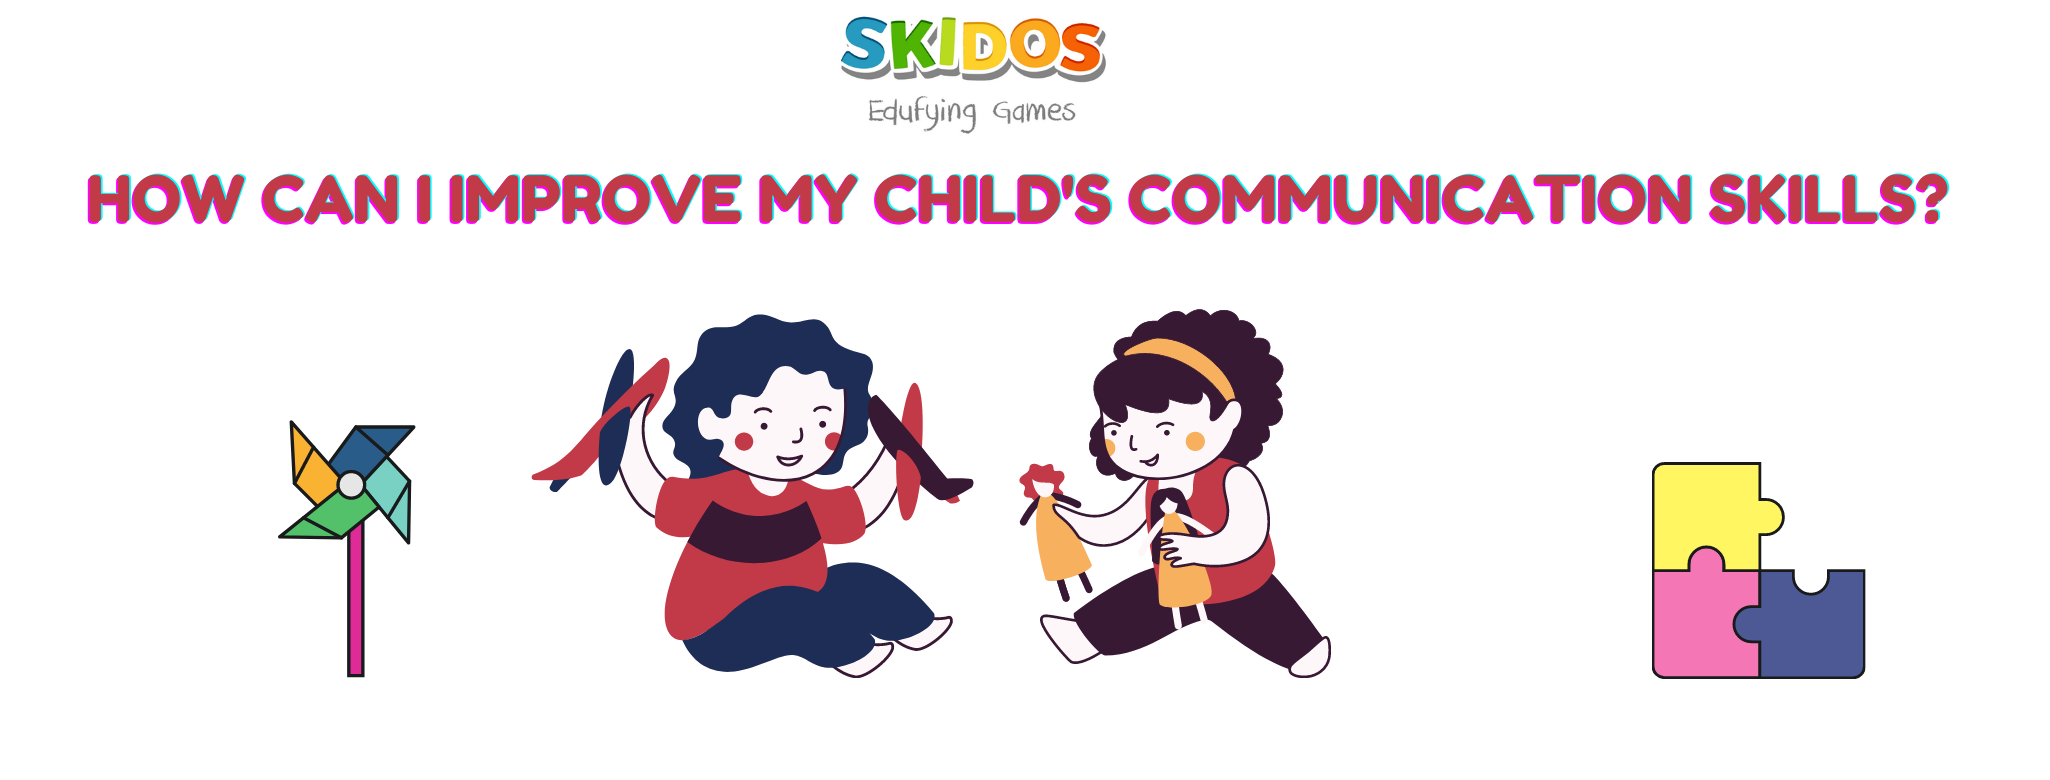 Communication Skills for Kids: Activities To Improve [Expert Advice]